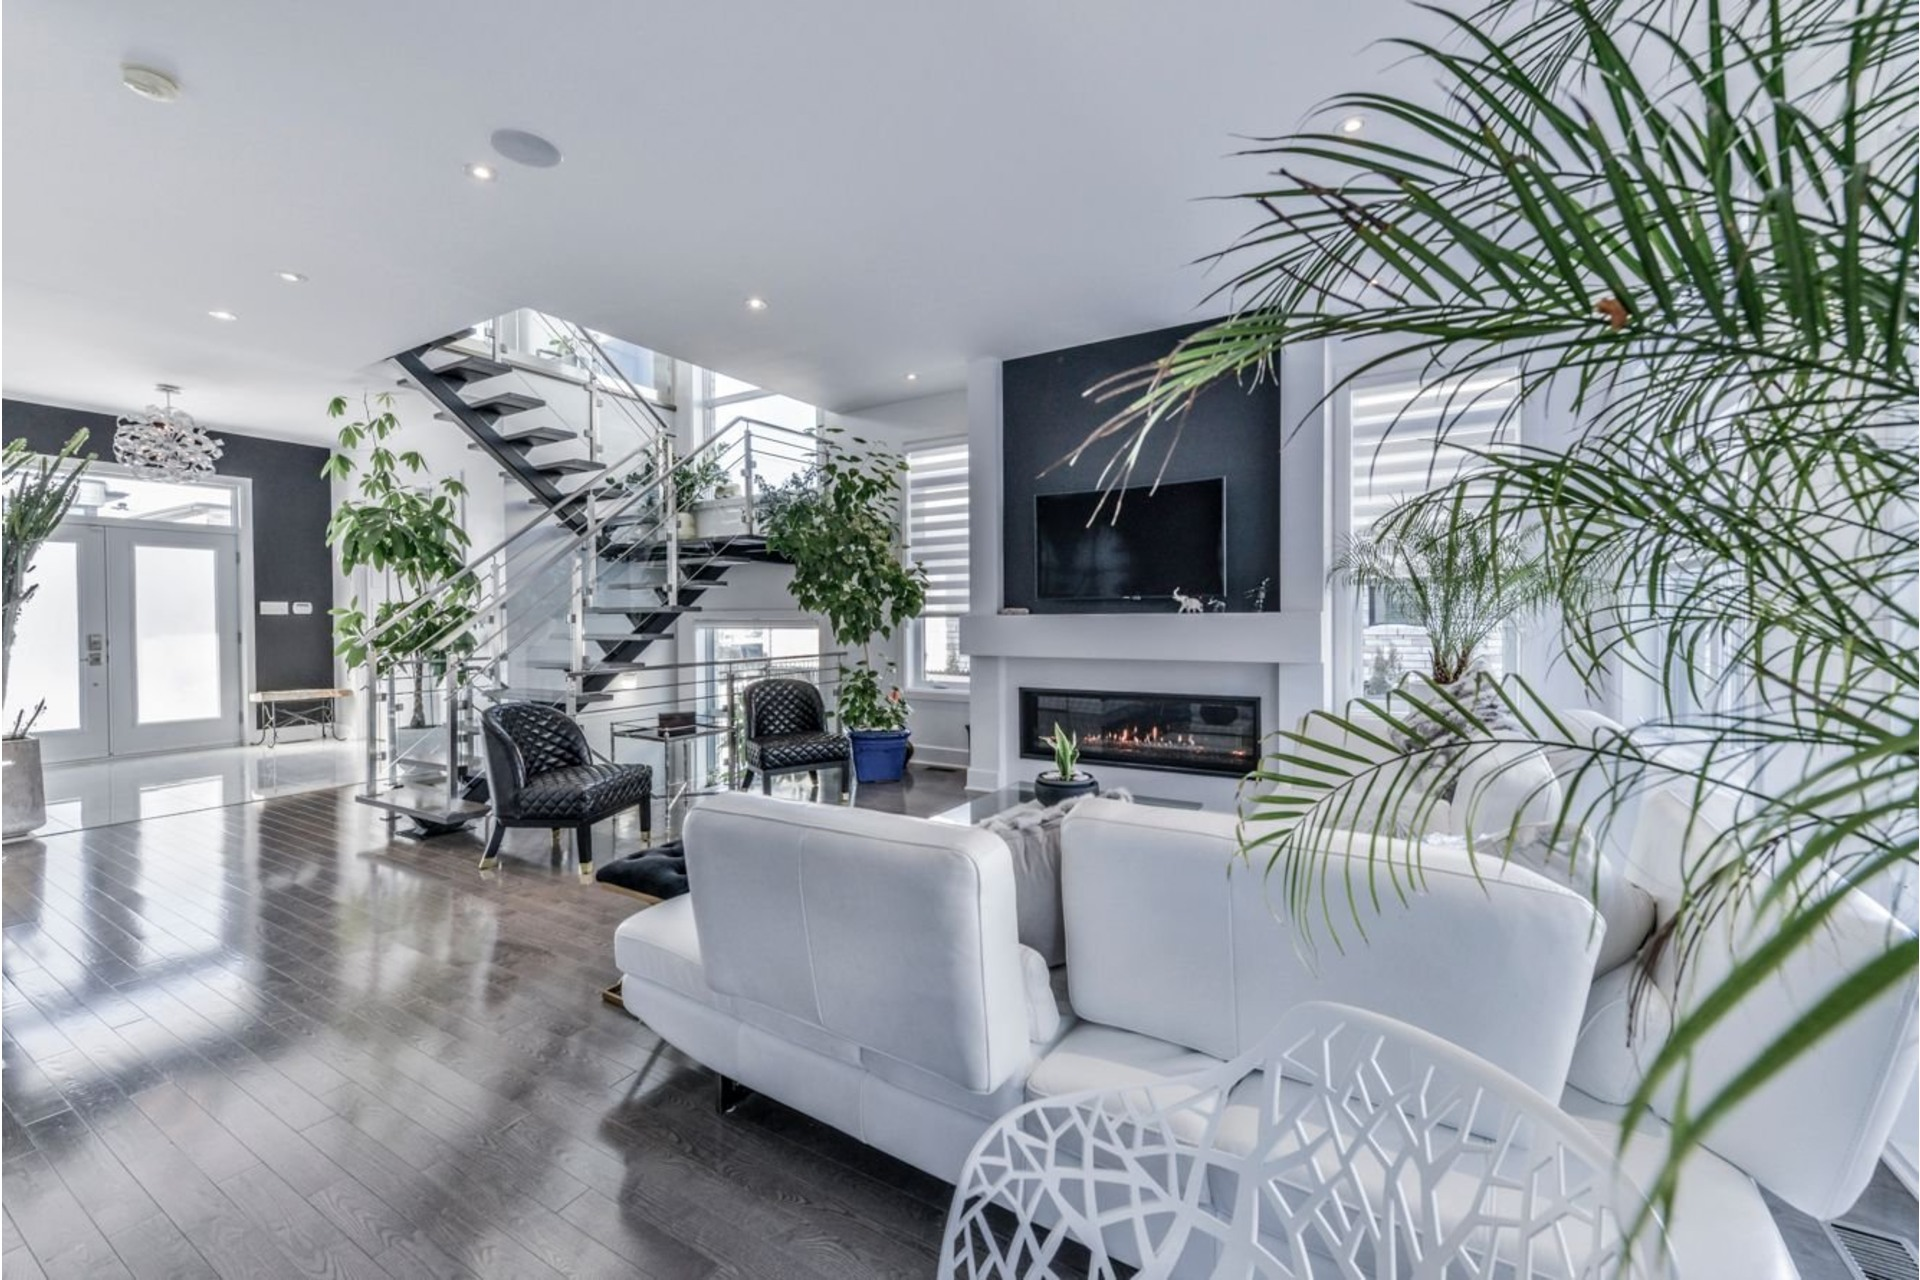 image 8 - House For sale Brossard - 7 rooms